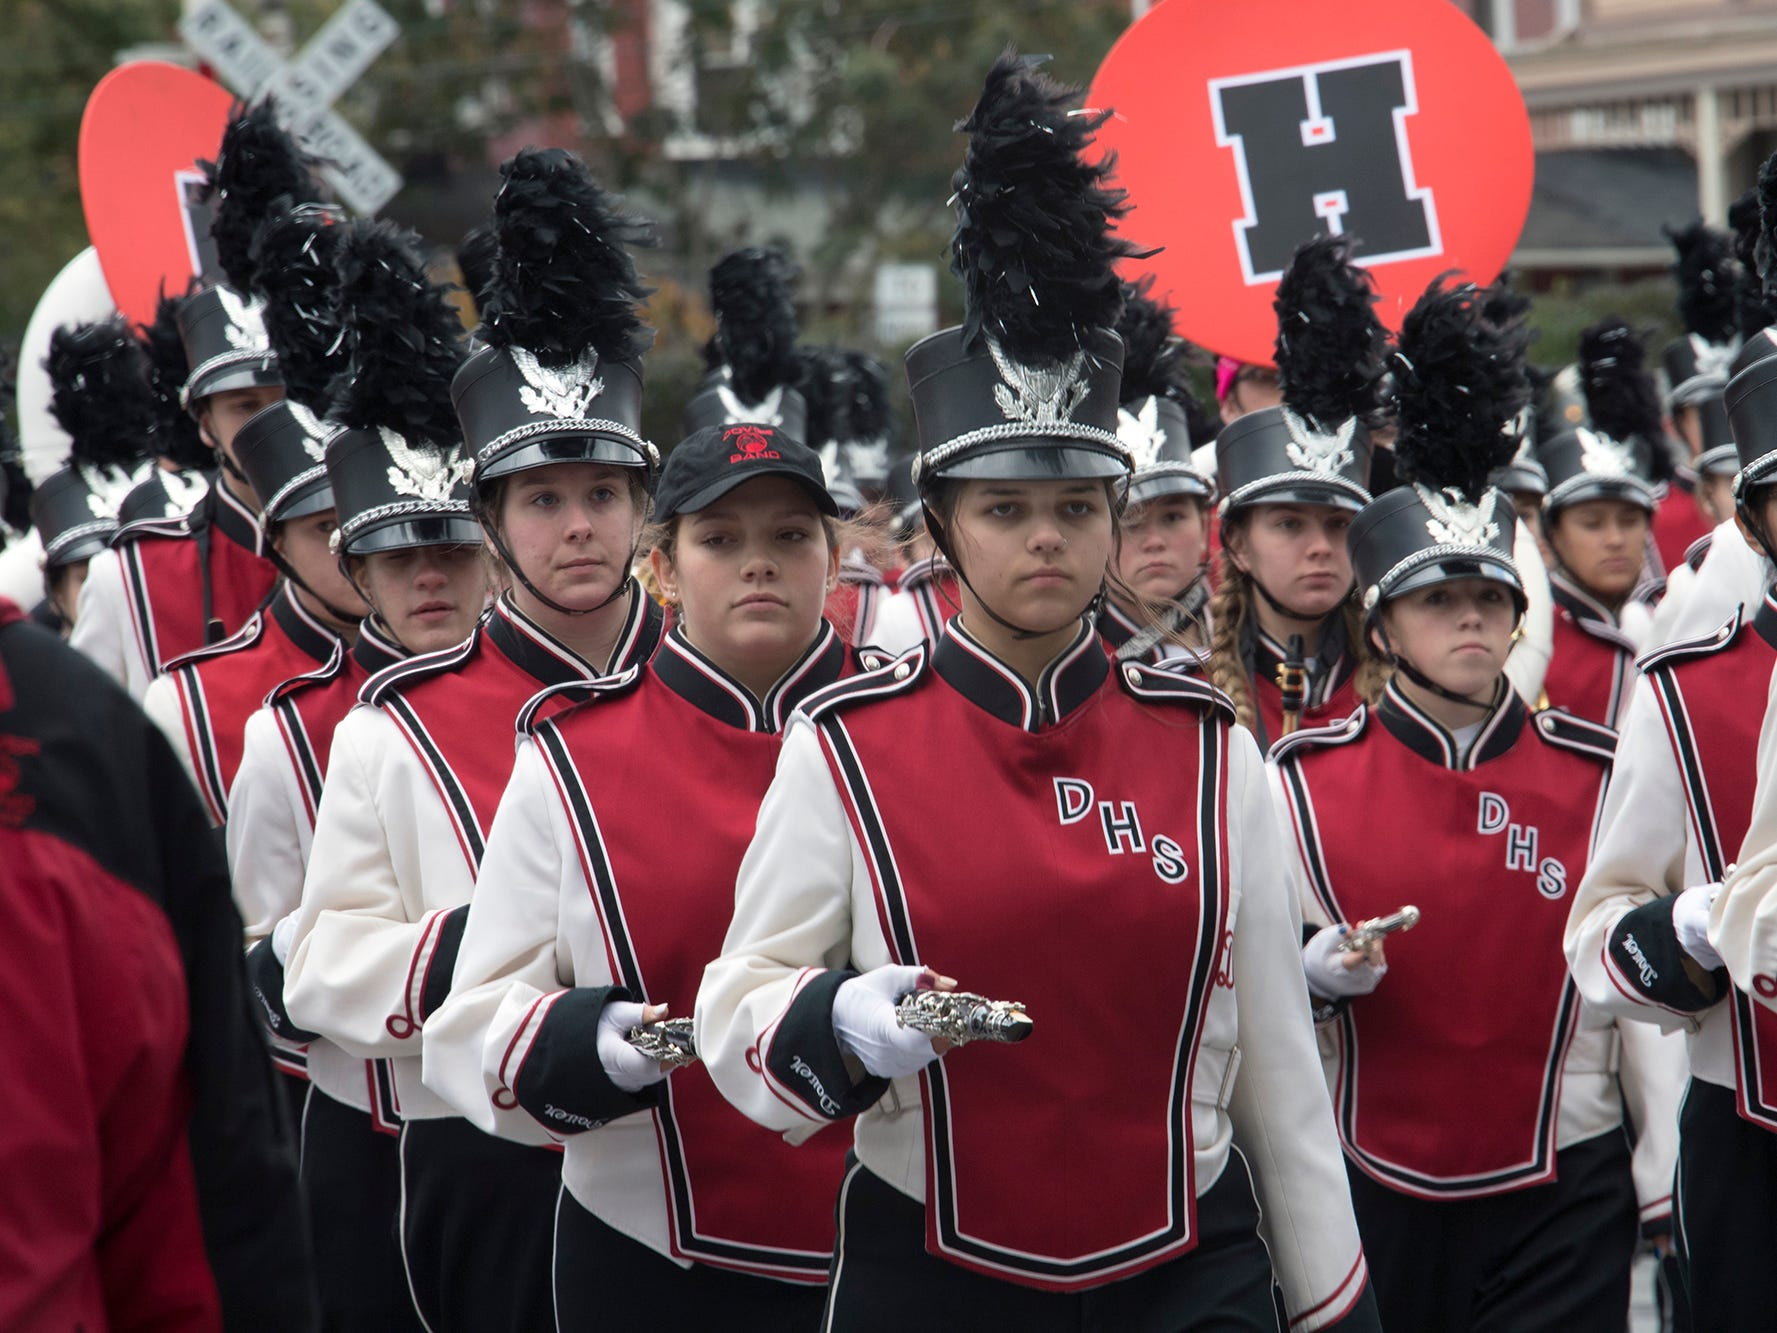 Dover Area High School marches during the 69th Annual York Halloween Parade presented by York Traditions Bank Sunday in York.